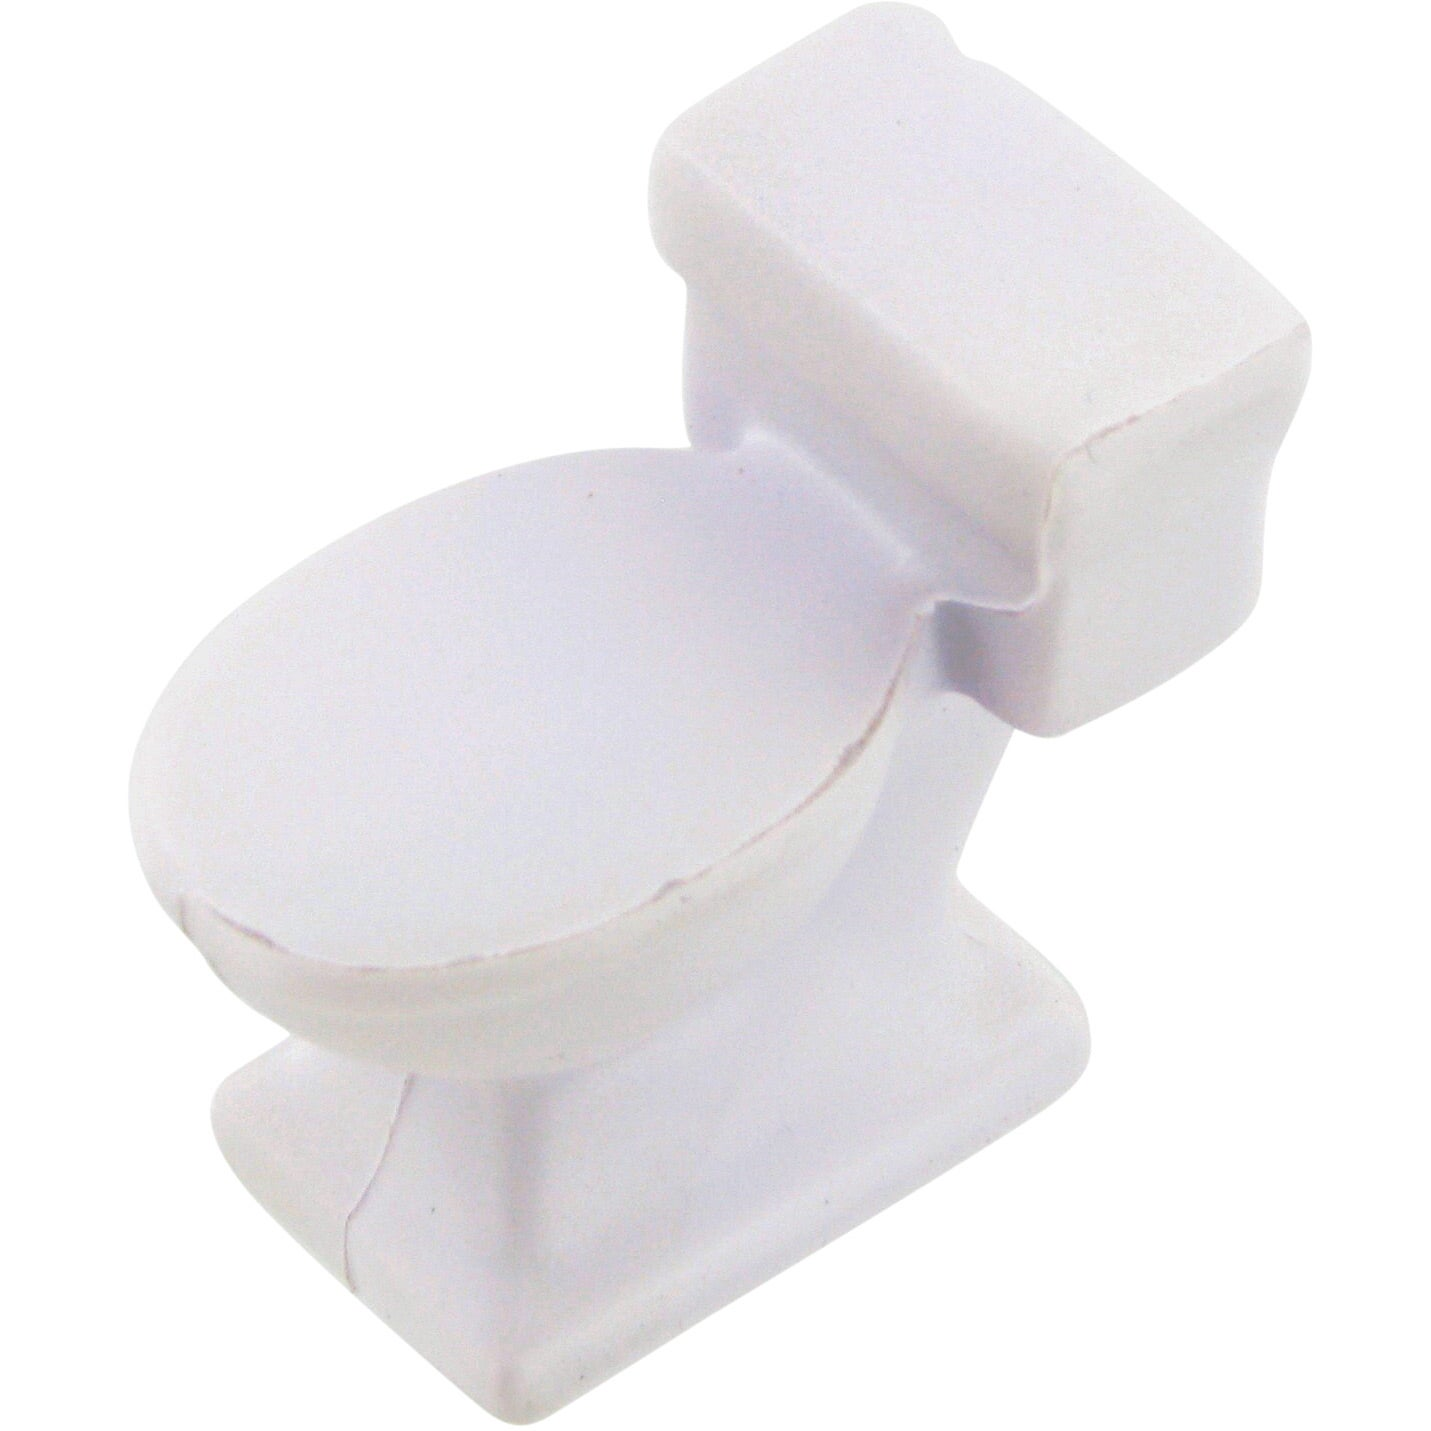 Promotional Toilet Bowl Stress Toys with Custom Logo for $0.686 Ea.